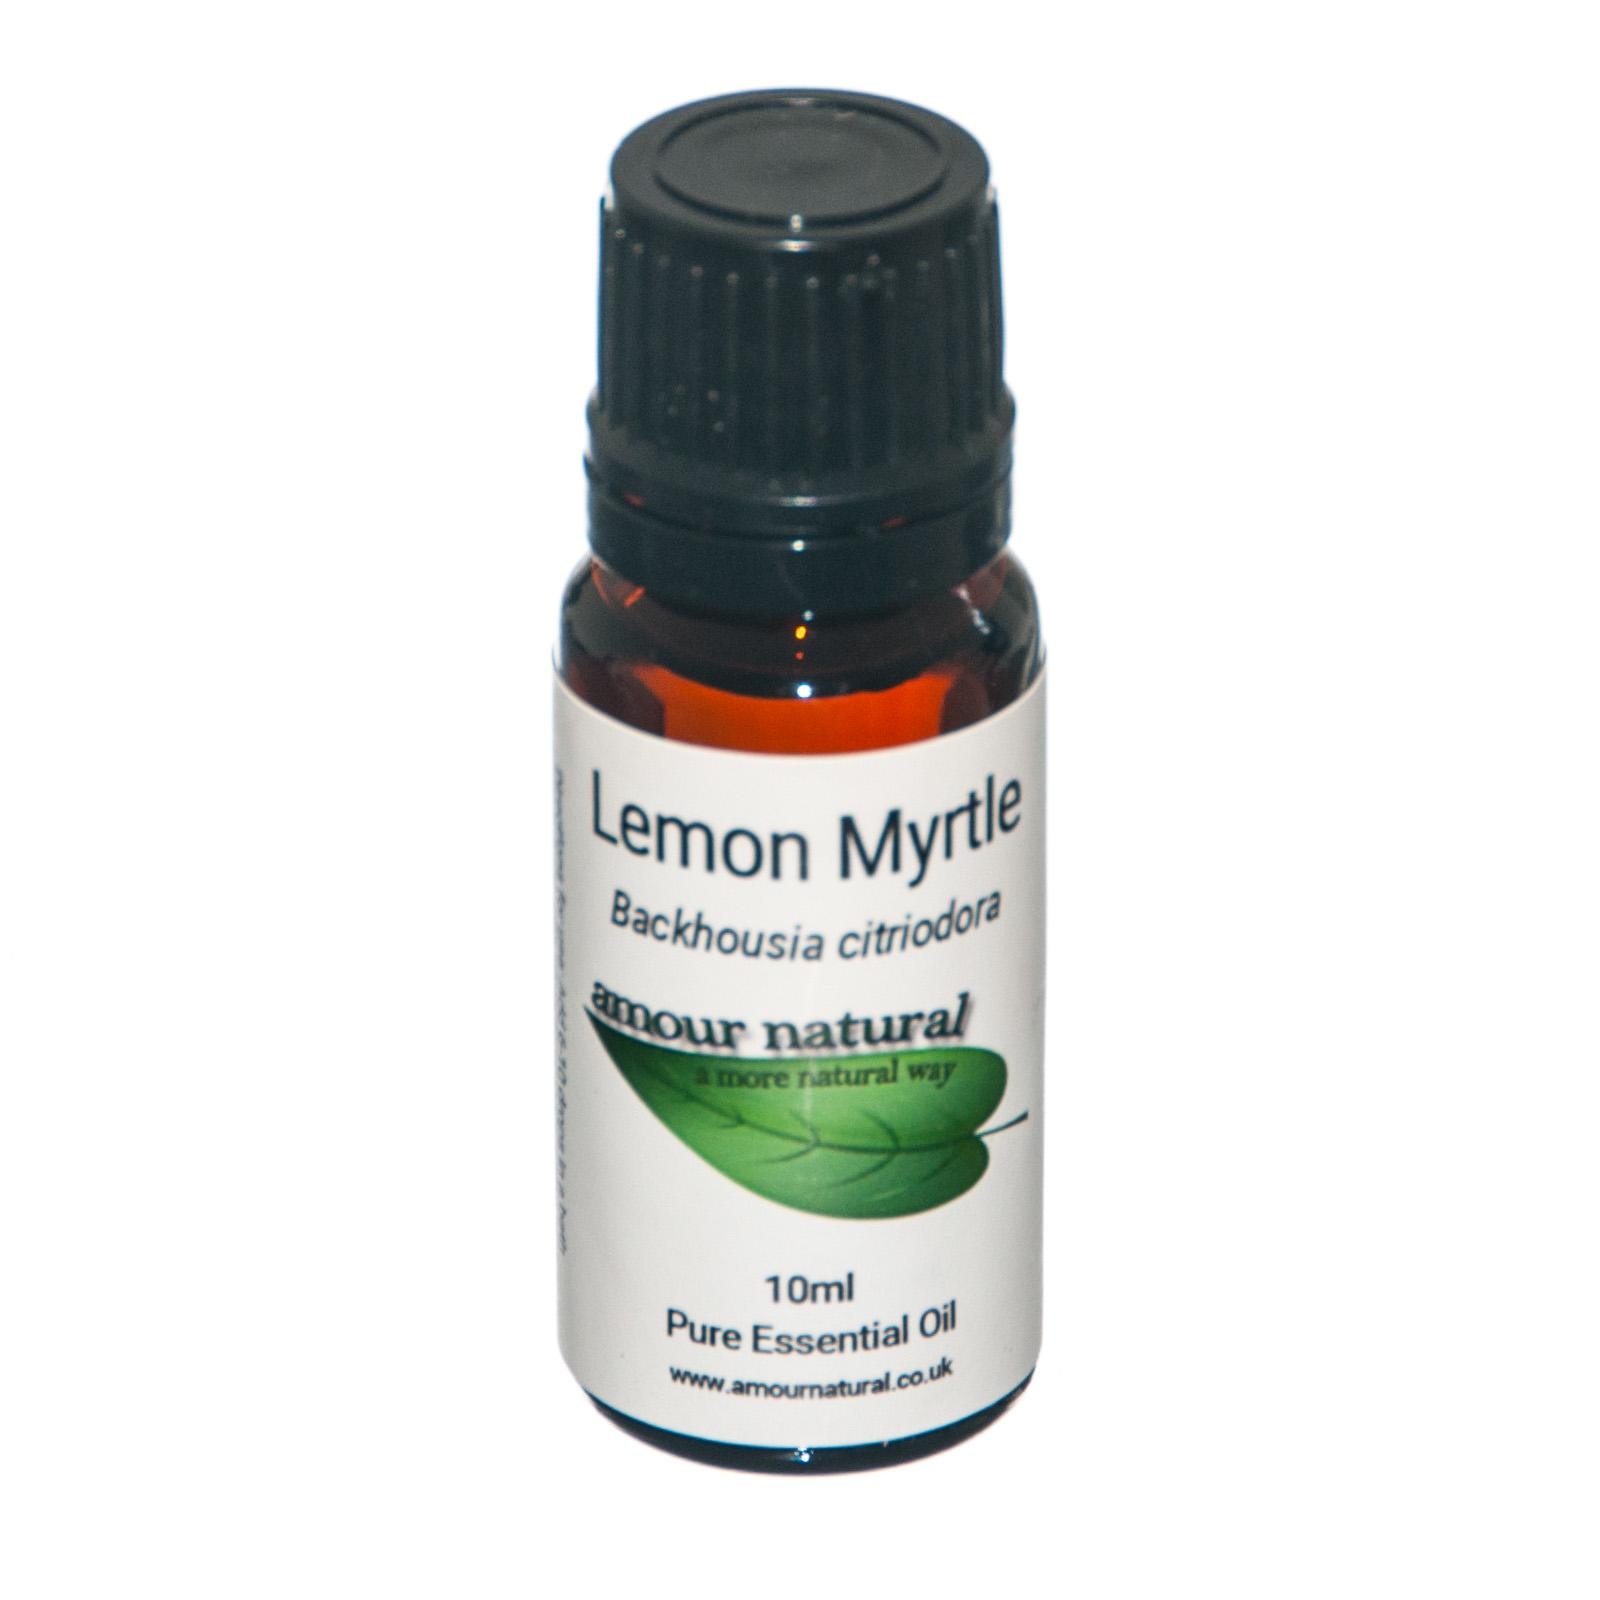 1 x 10 ml bottle of  Lemon Myrtle Essential Oil